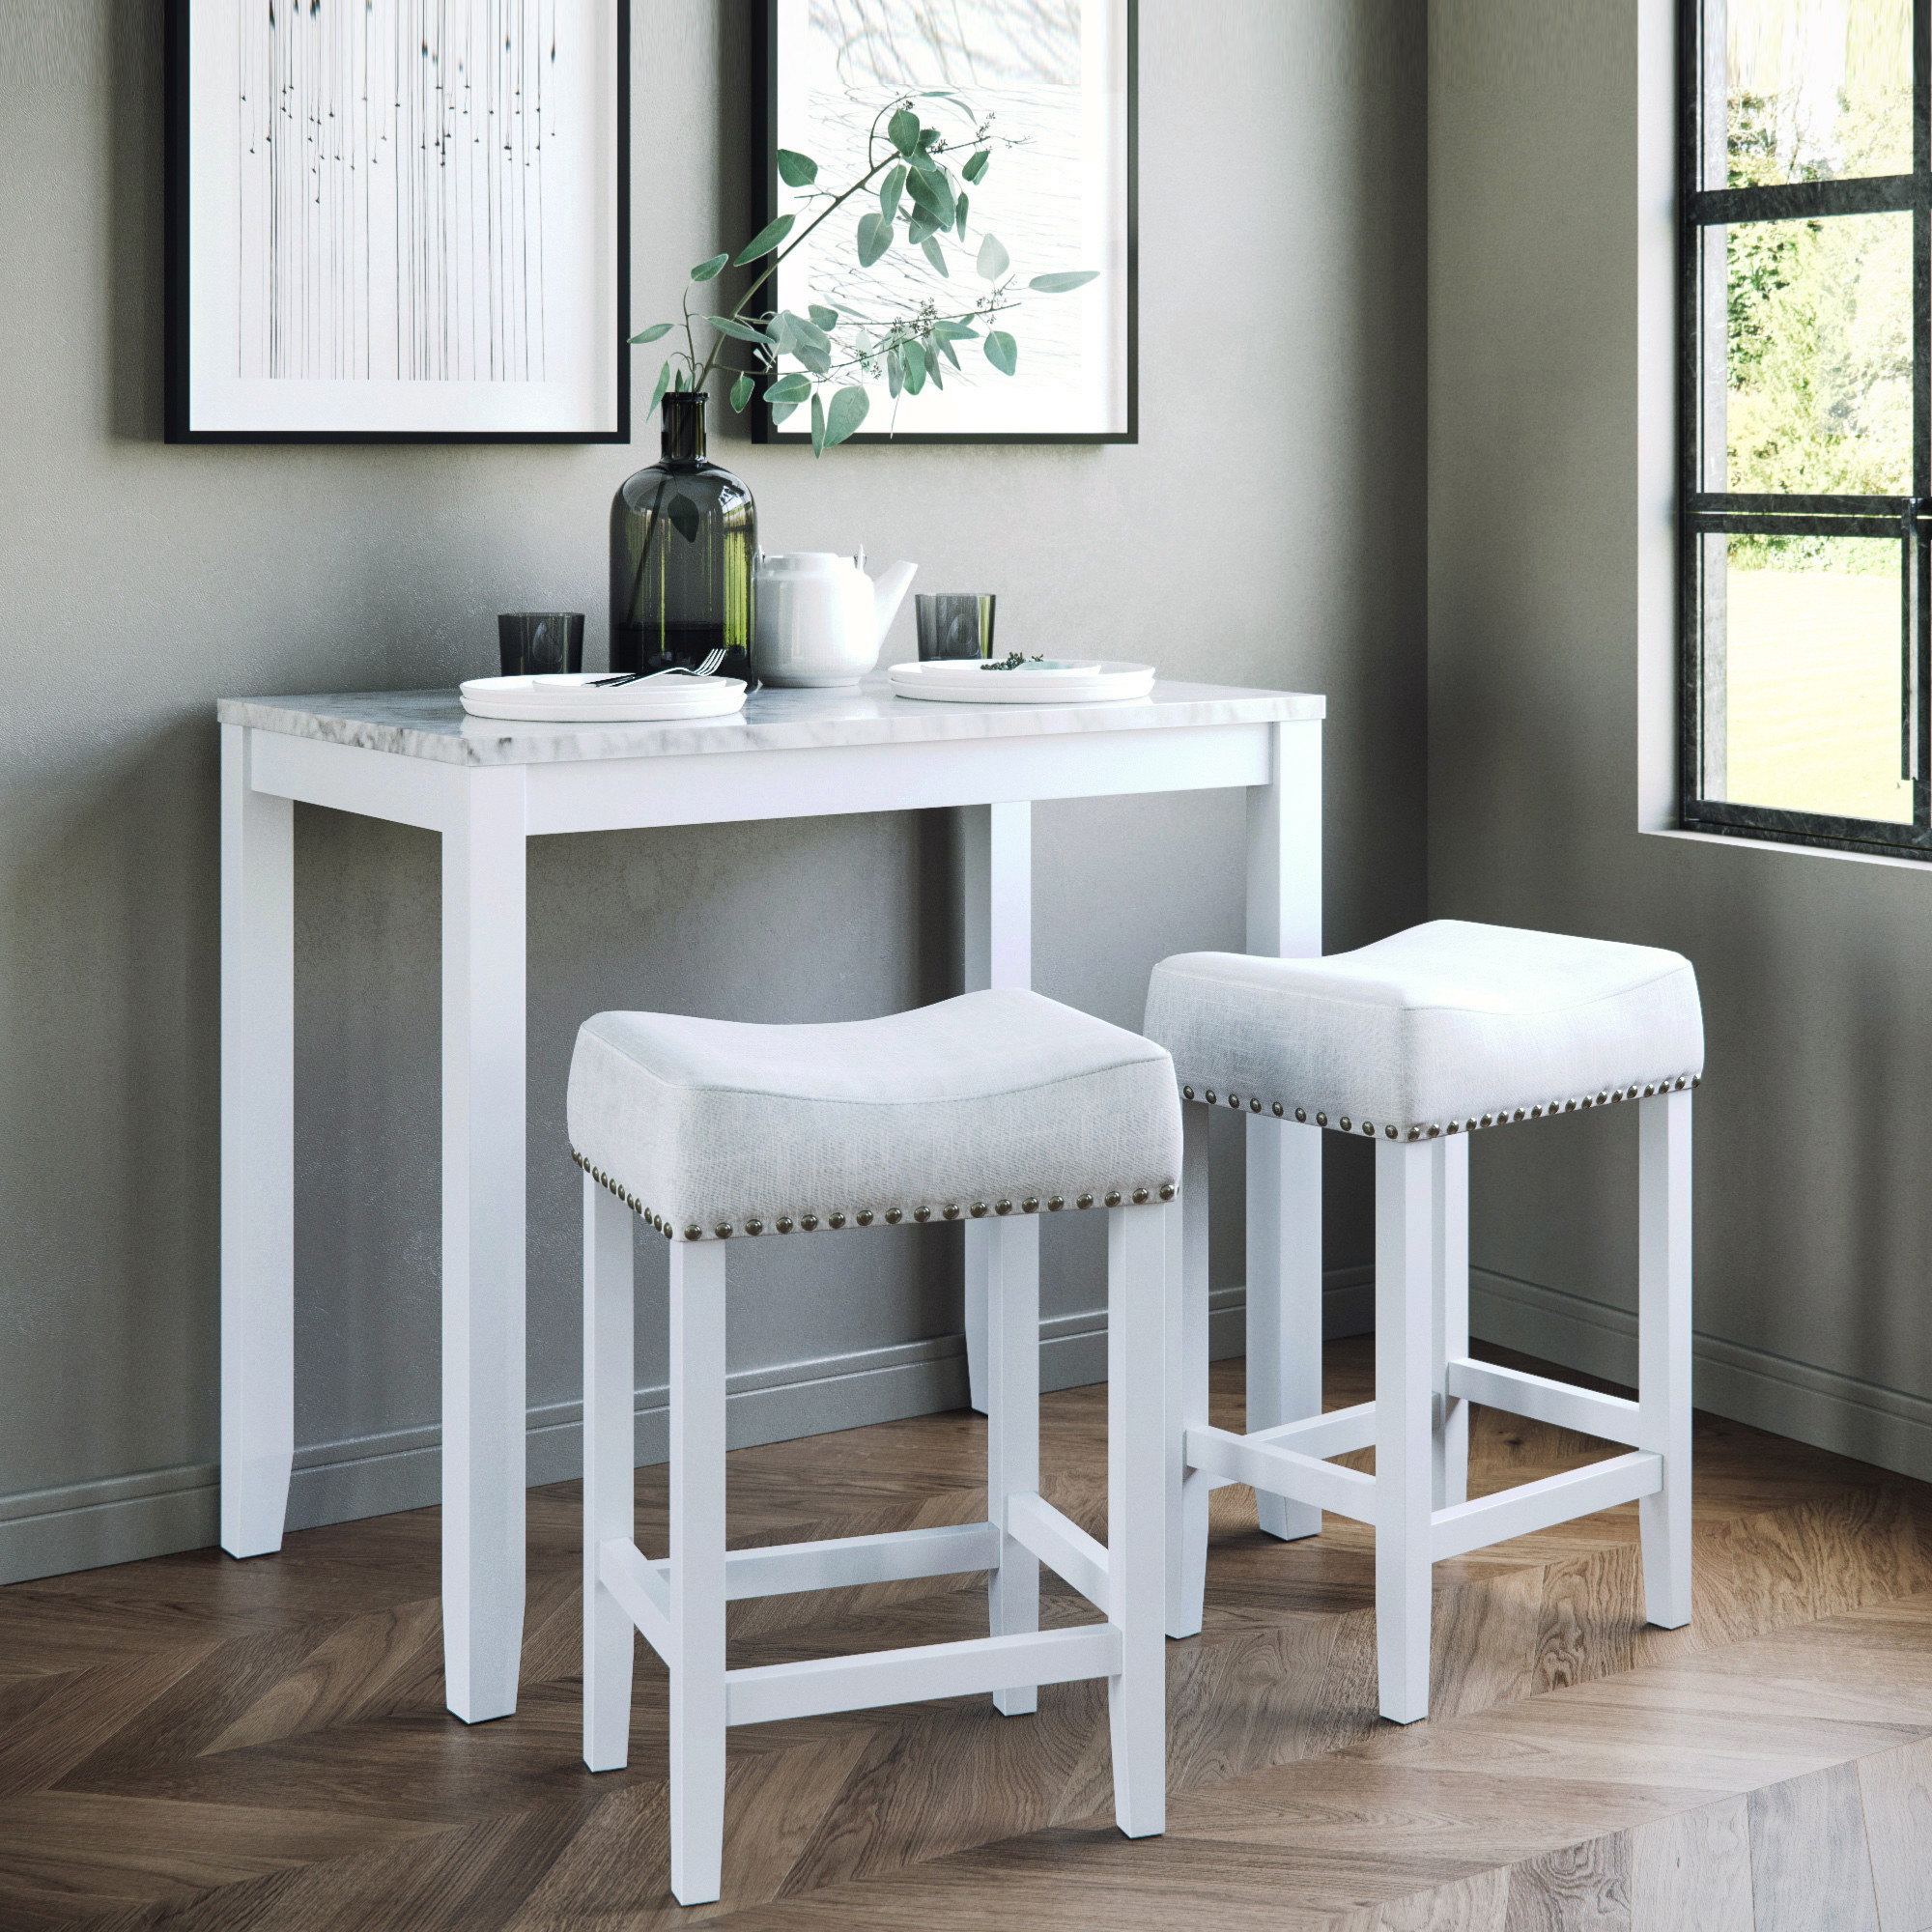 A table with a marble top and white wood base and two seats with light gray fabric tops